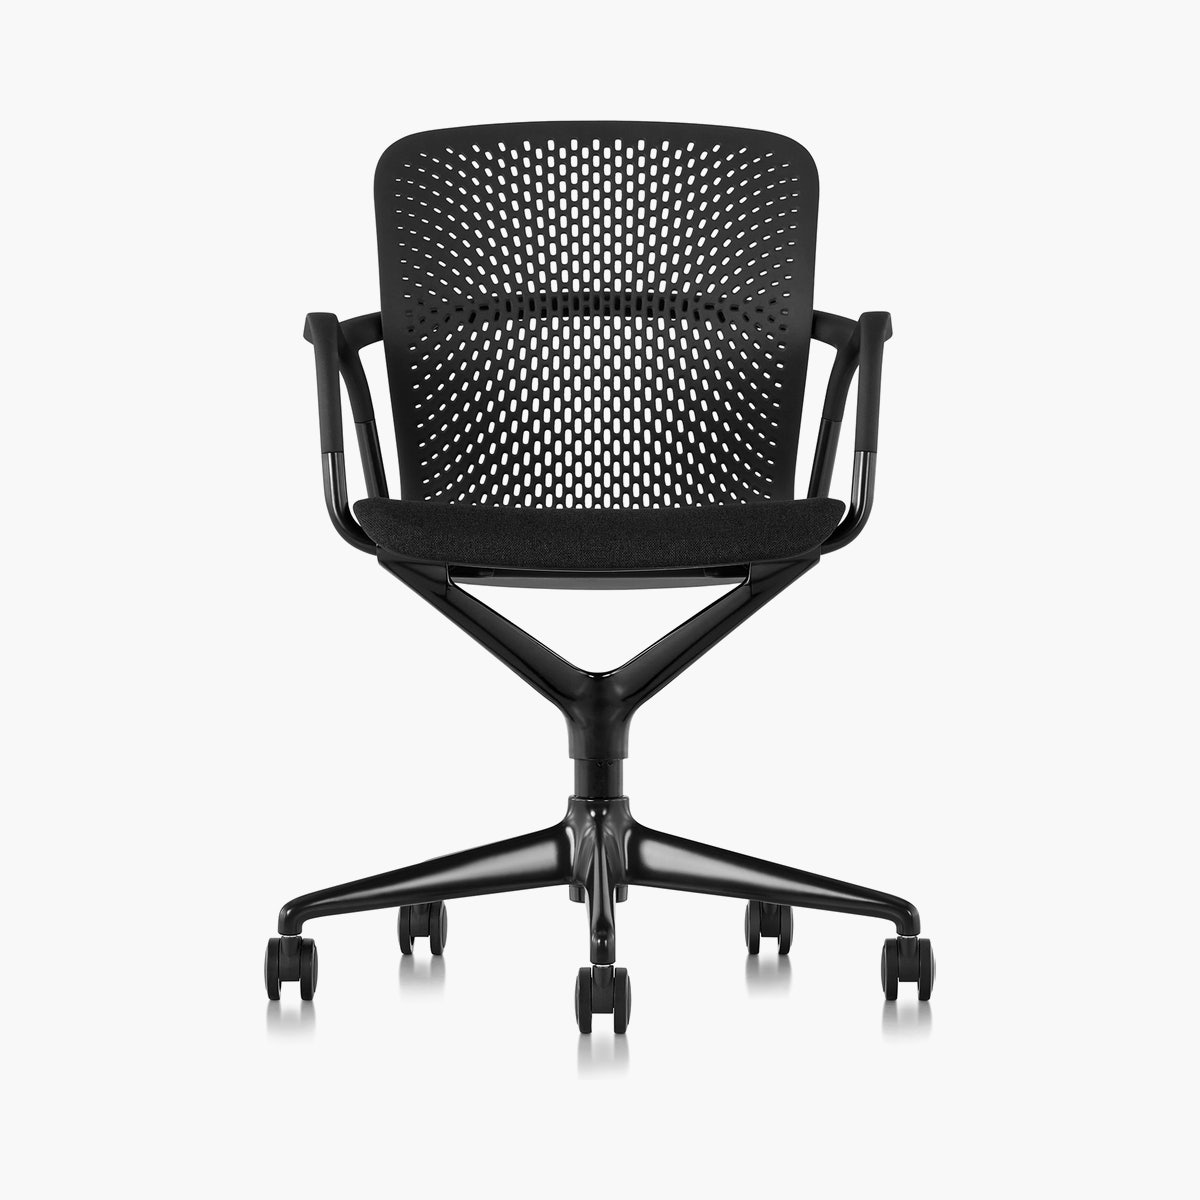 Keyn 5 Star Chair